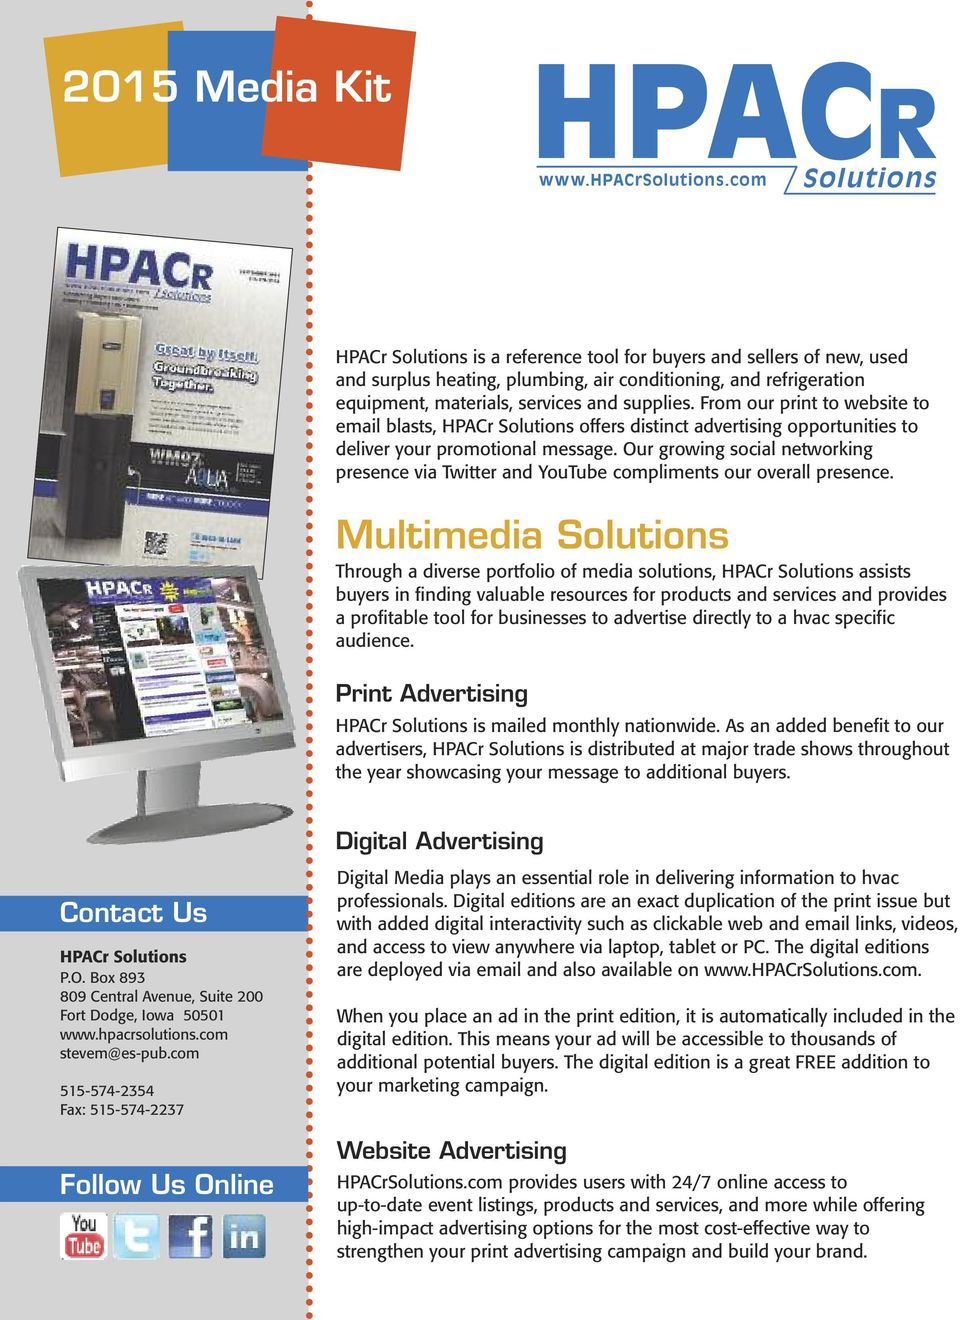 From our print to website to email blasts, HPACr Solutions offers distinct advertising opportunities to deliver your promotional message.